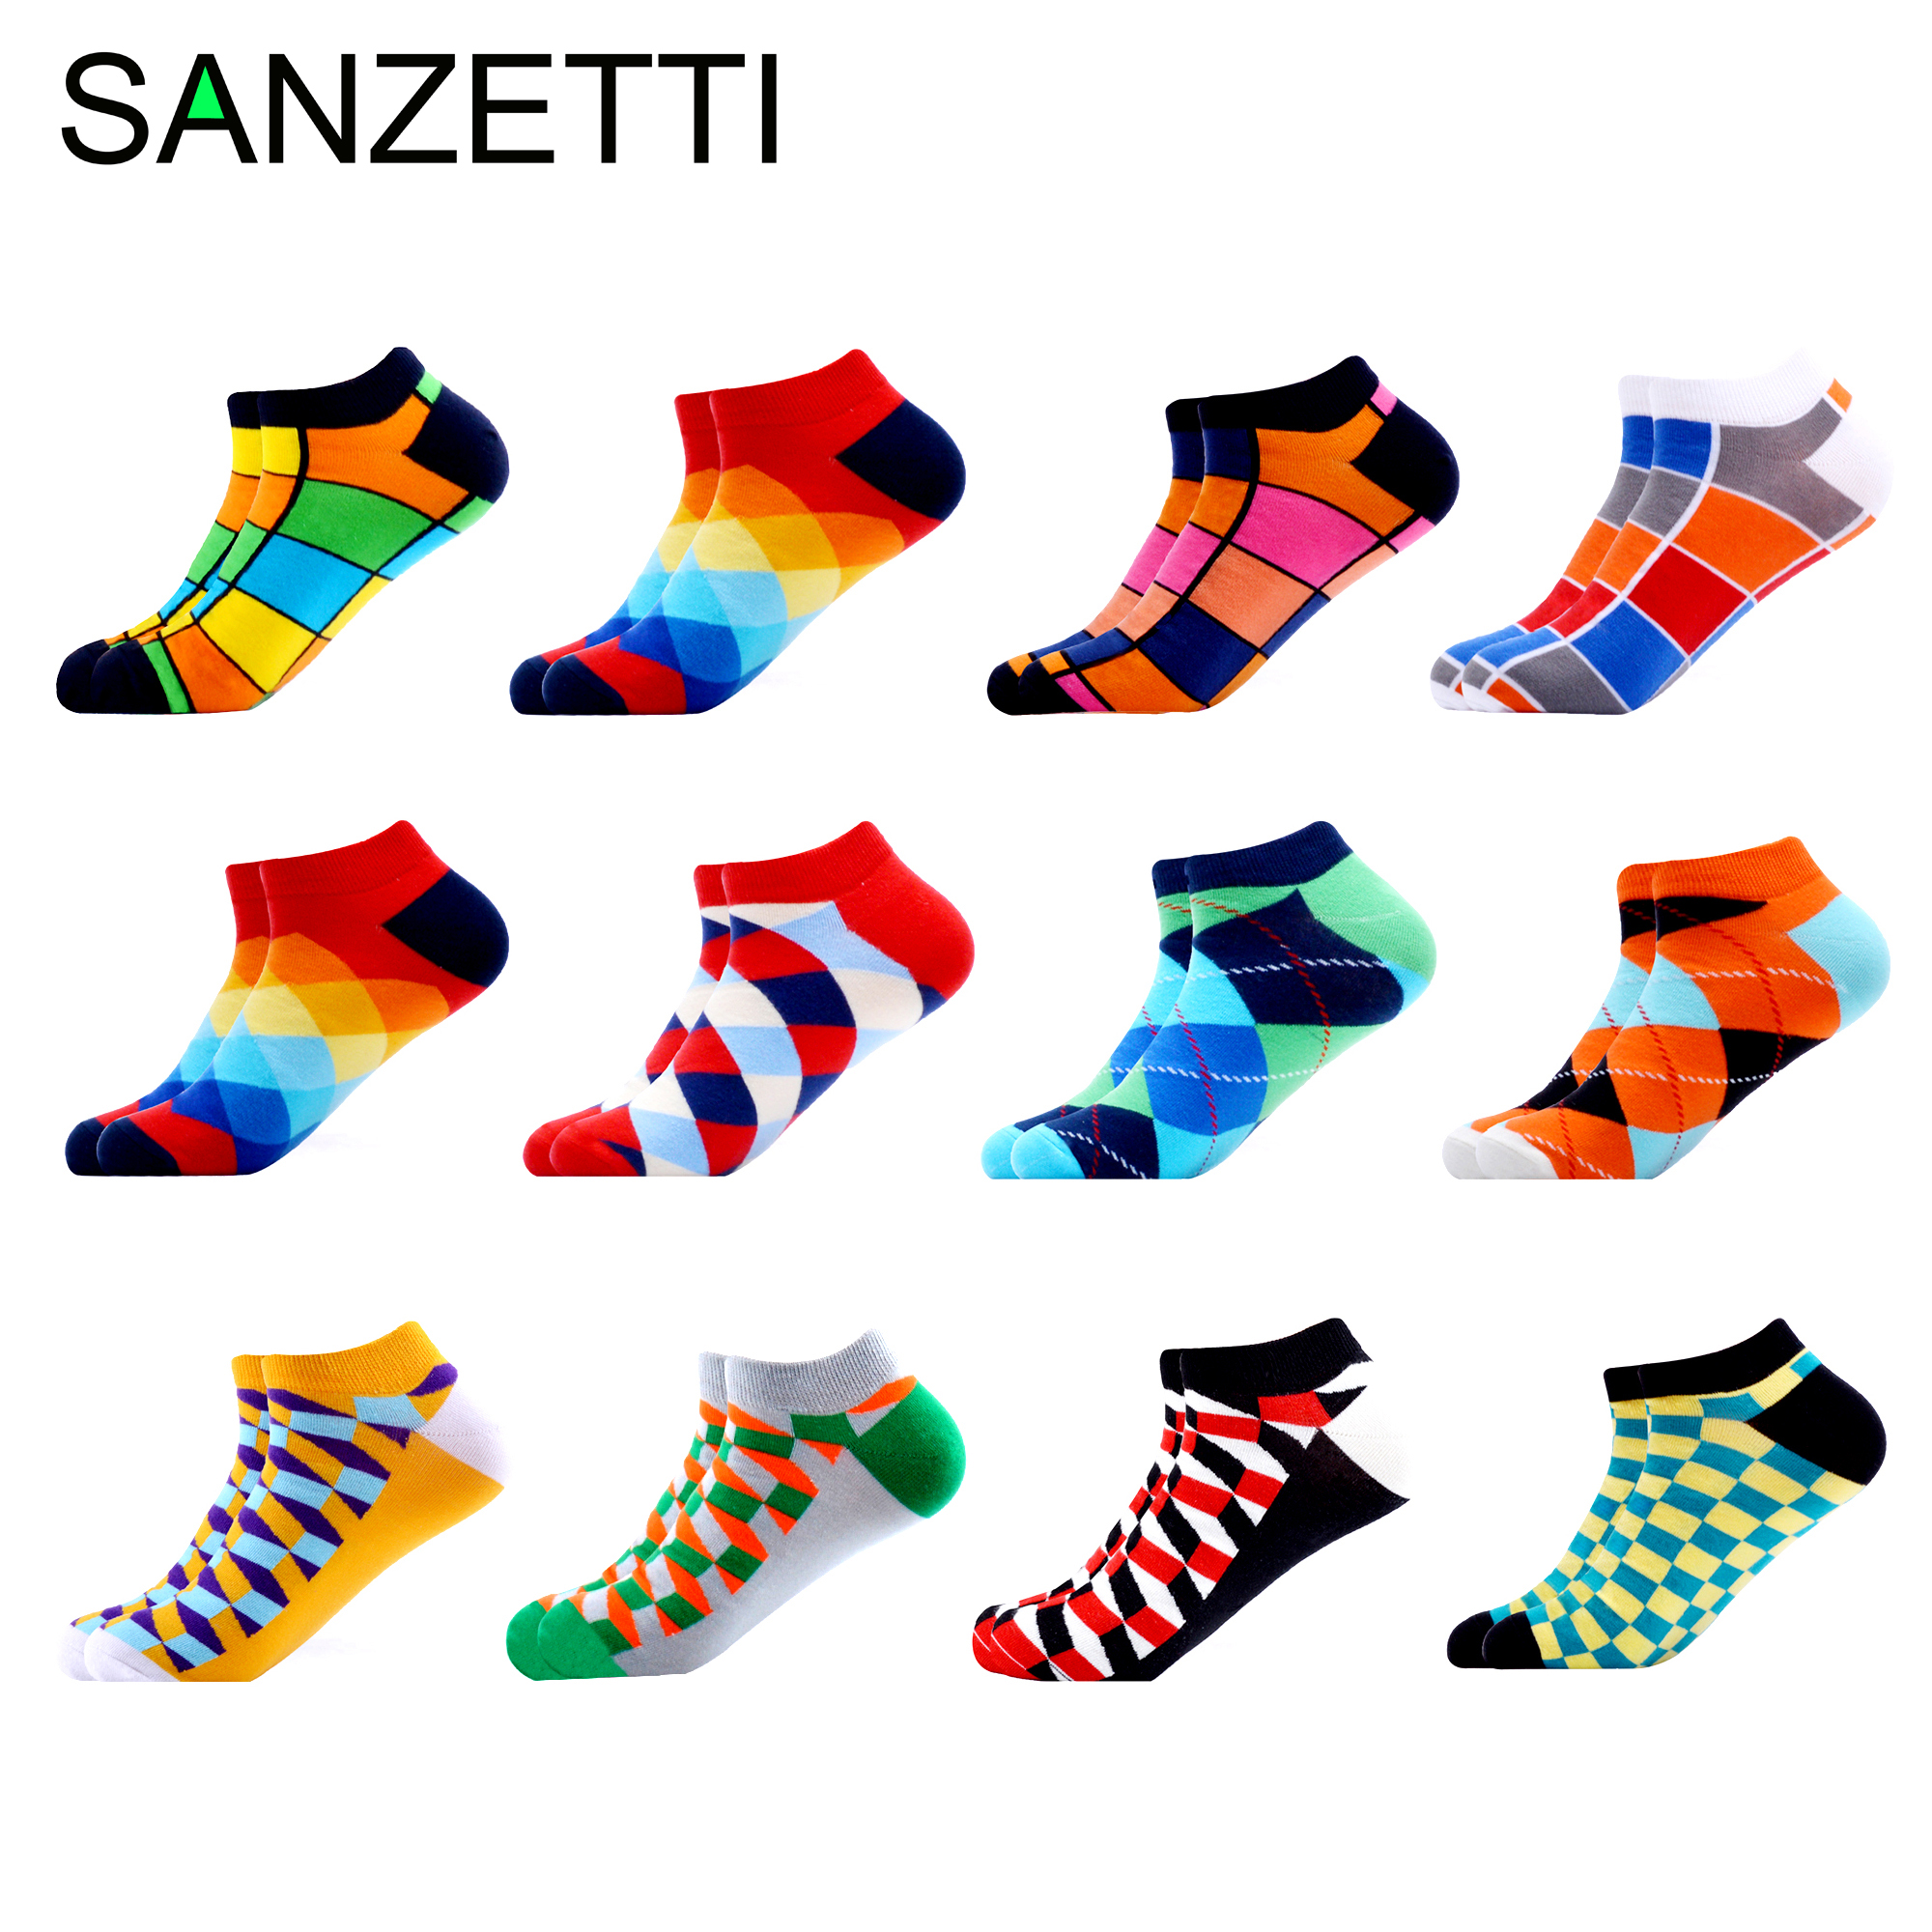 SANZETTI 12 Pairs/Lot Men's Casual Novelty Colorful Summer Ankle Socks Happy Combed Cotton Short Socks Plaid Dress Boat Socks